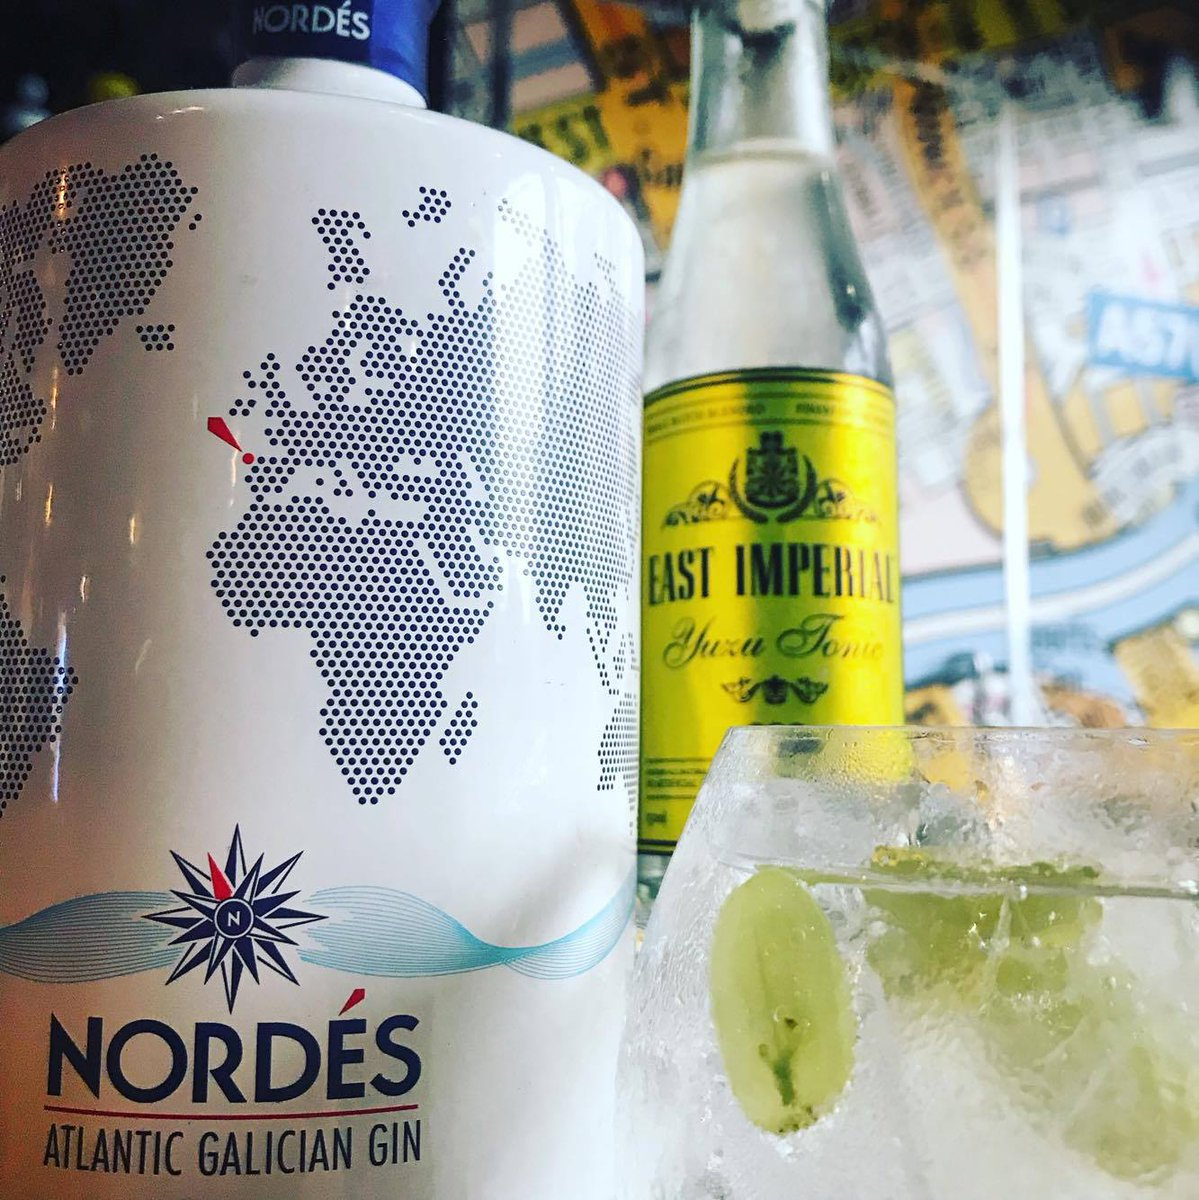 It&#39;s Friday #Manchester so it&#39;s time for a NEW Gin of the Week! This week we have @Nordesgin with @East_Imperial Yuzu tonic #FridayFeeling <br>http://pic.twitter.com/QZA4dANQpJ